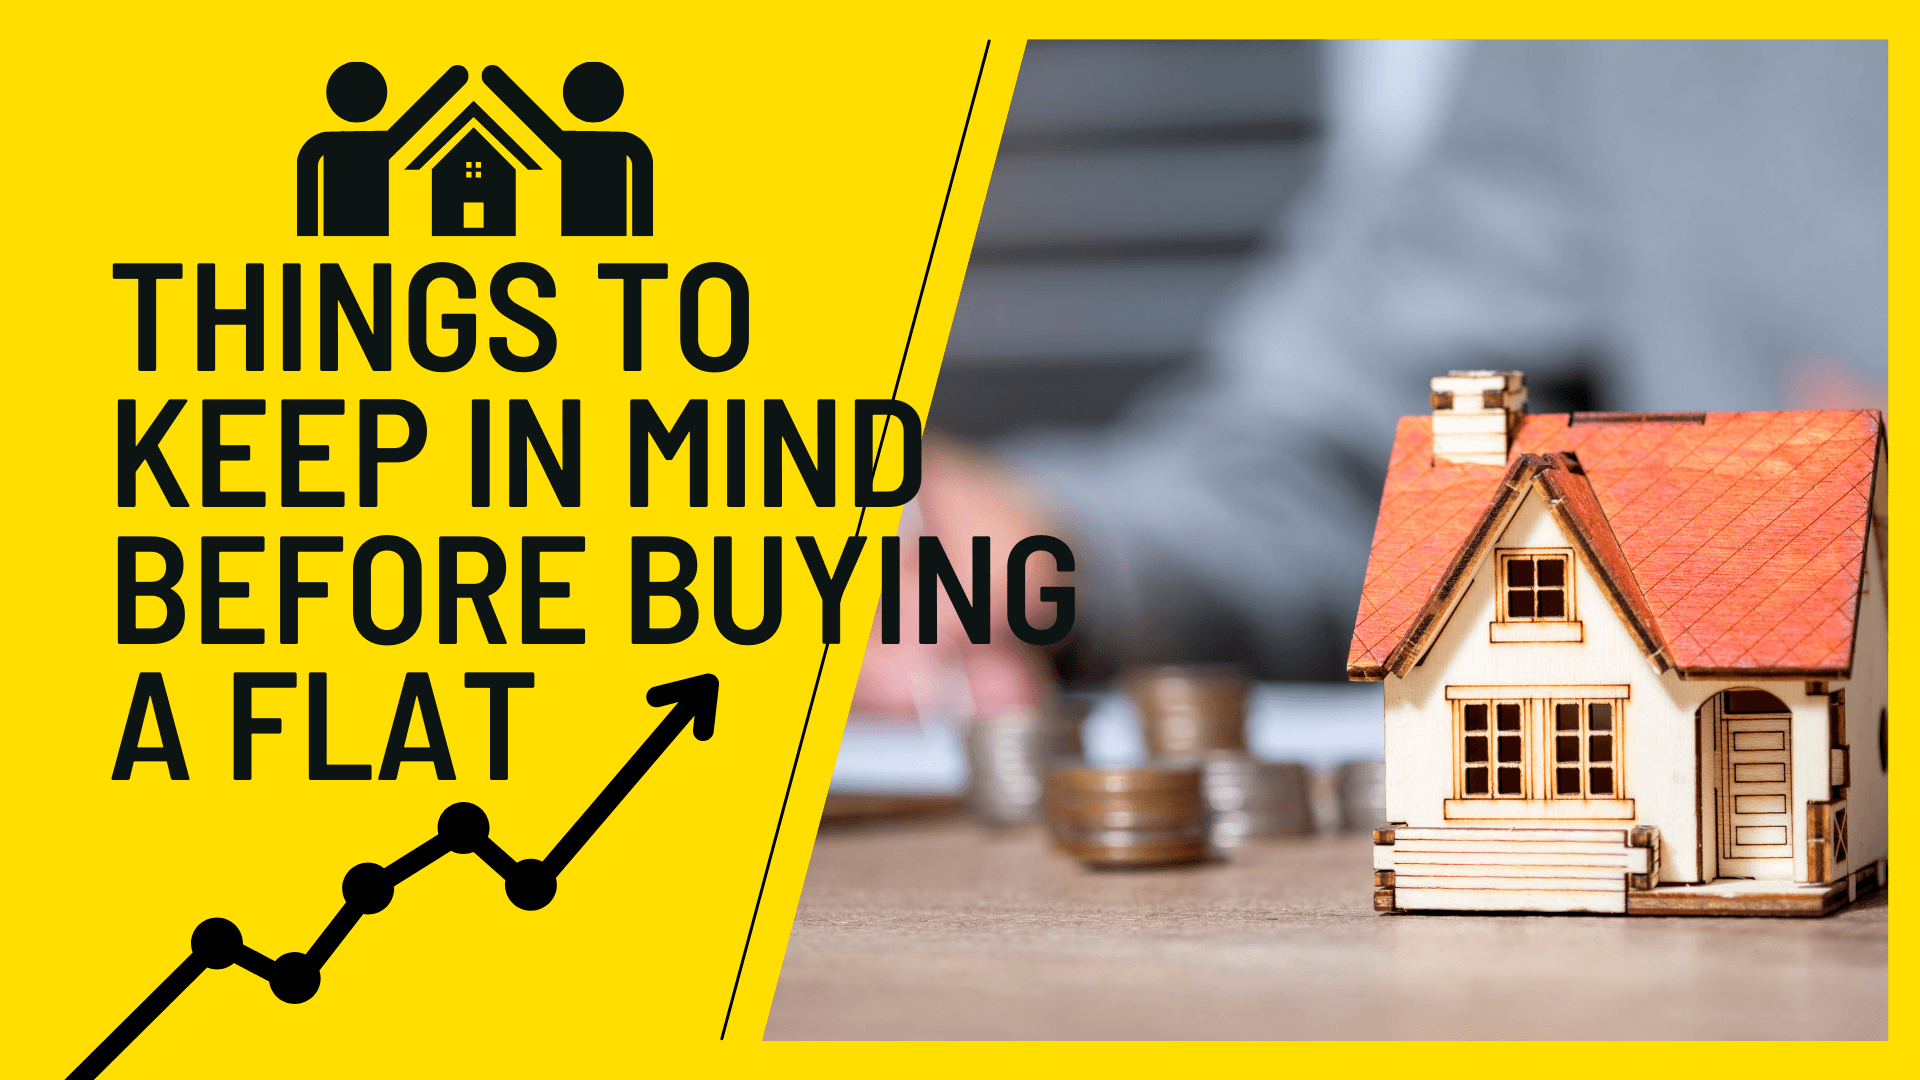 Things to keep in mind before buying a Flat